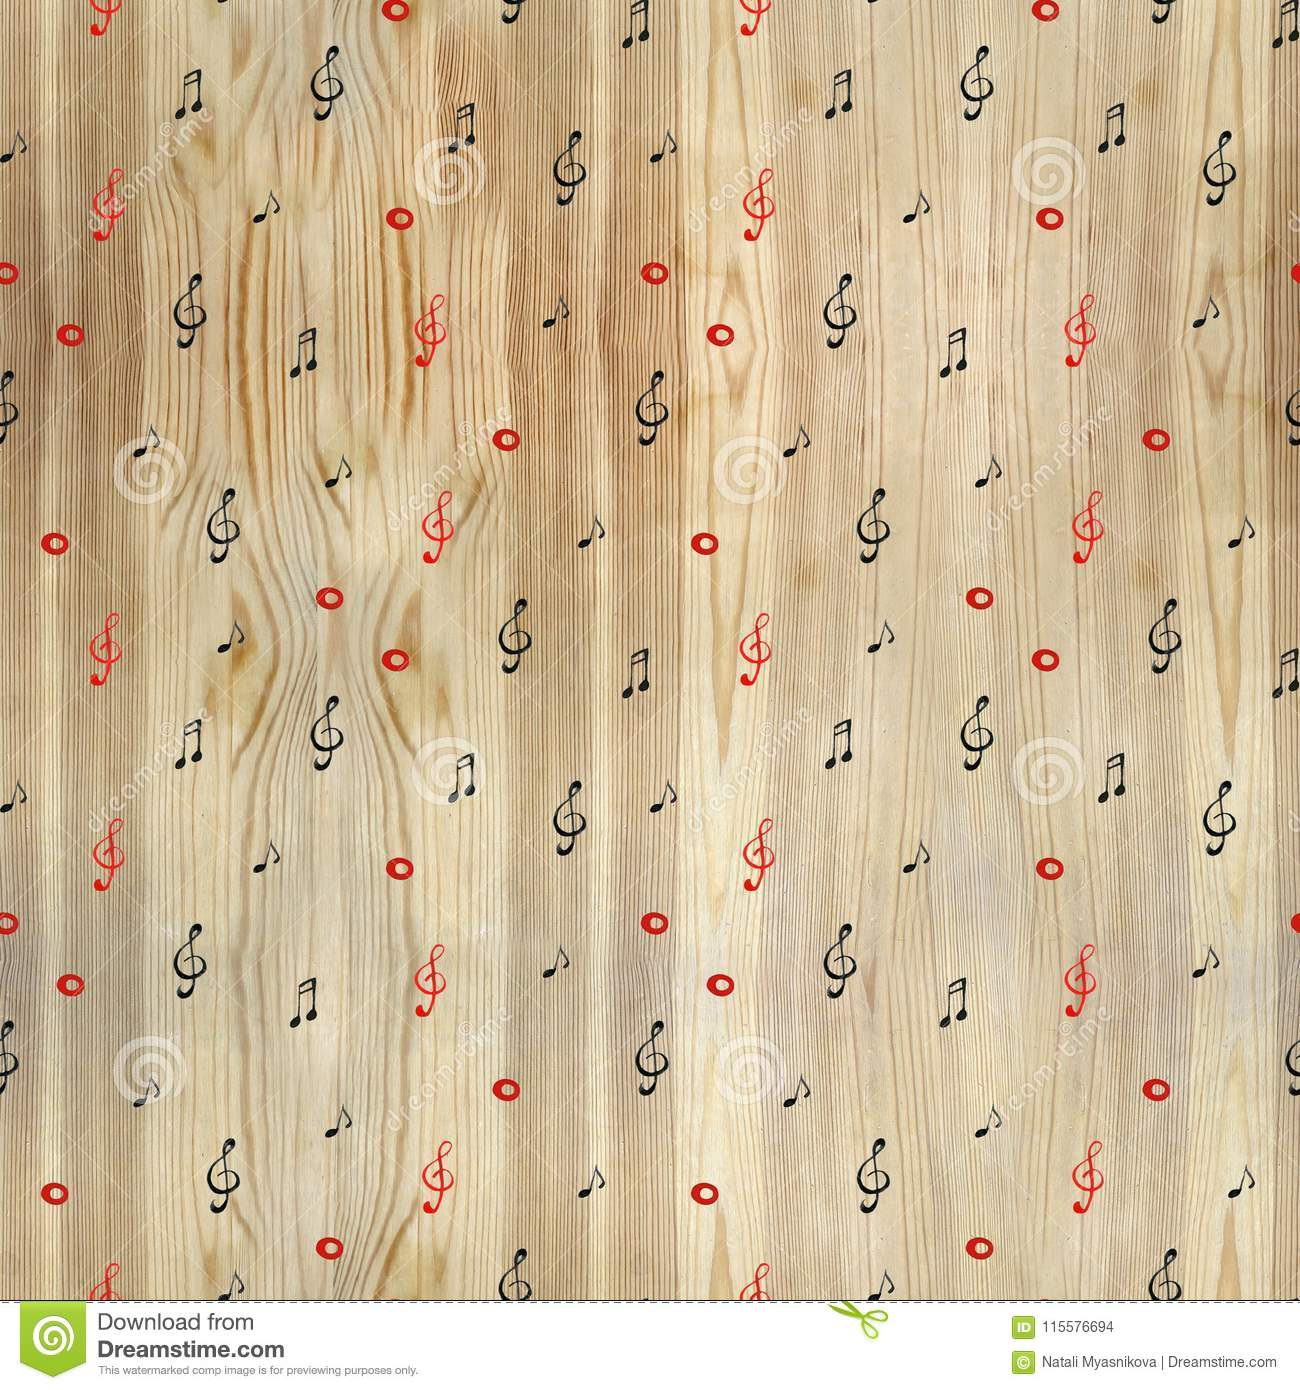 Watercolor artistic music background - seamless pattern with notes